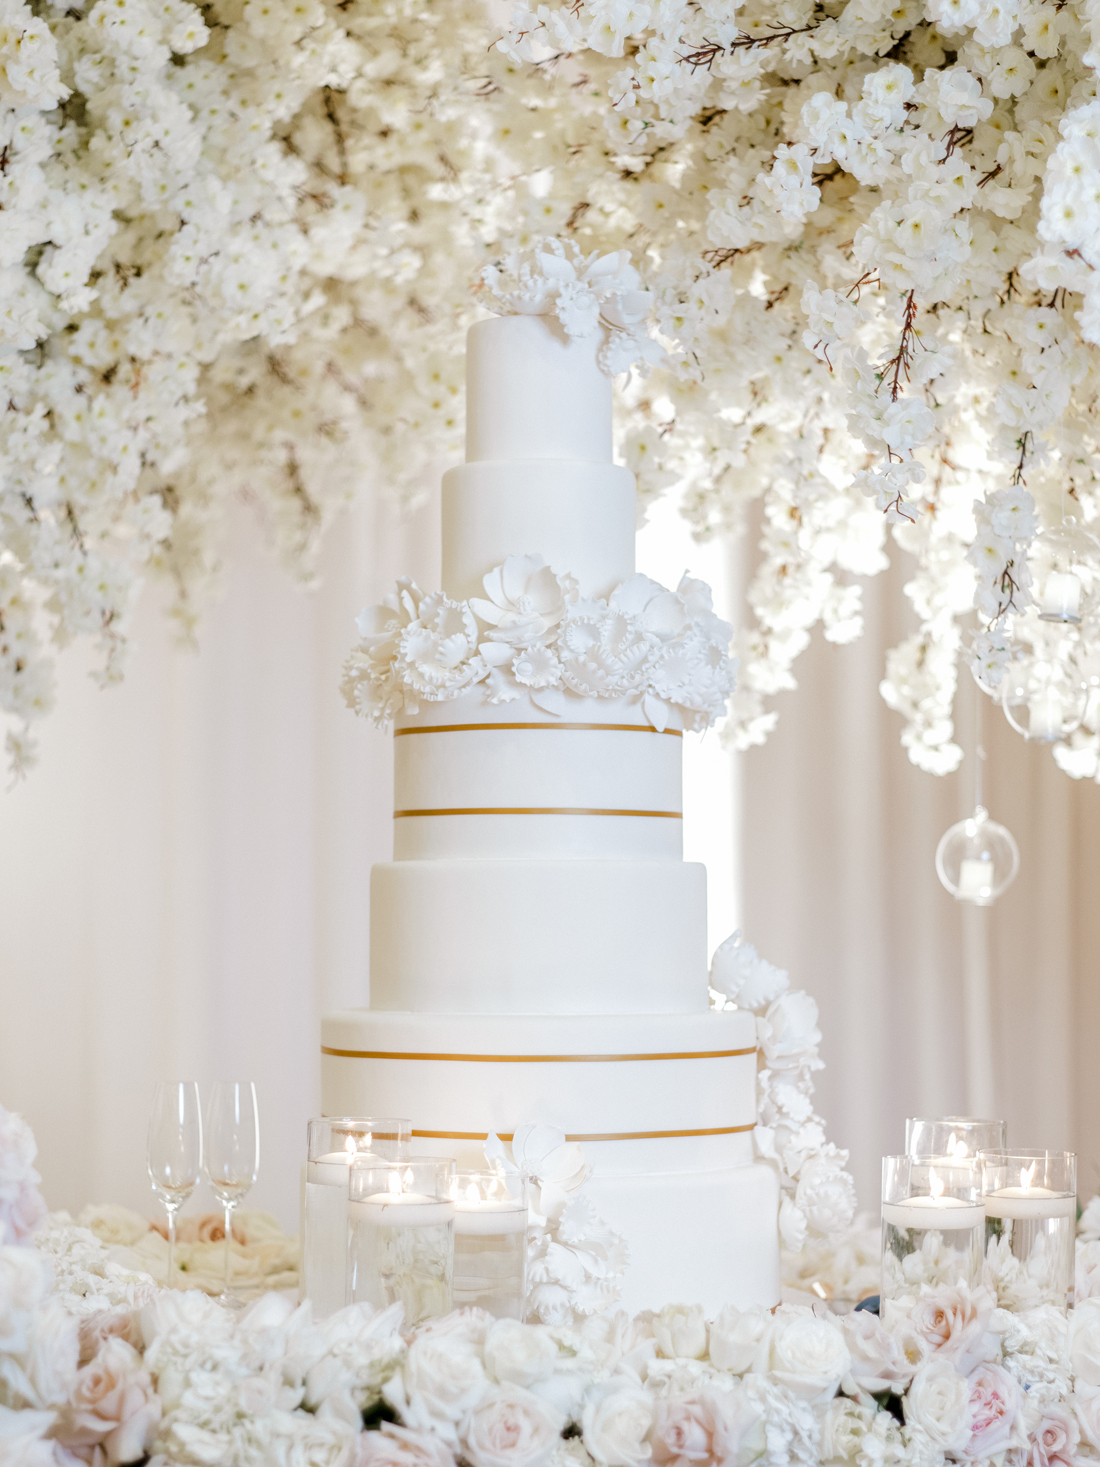 how to pick a wedding cake design based on your wedding theme